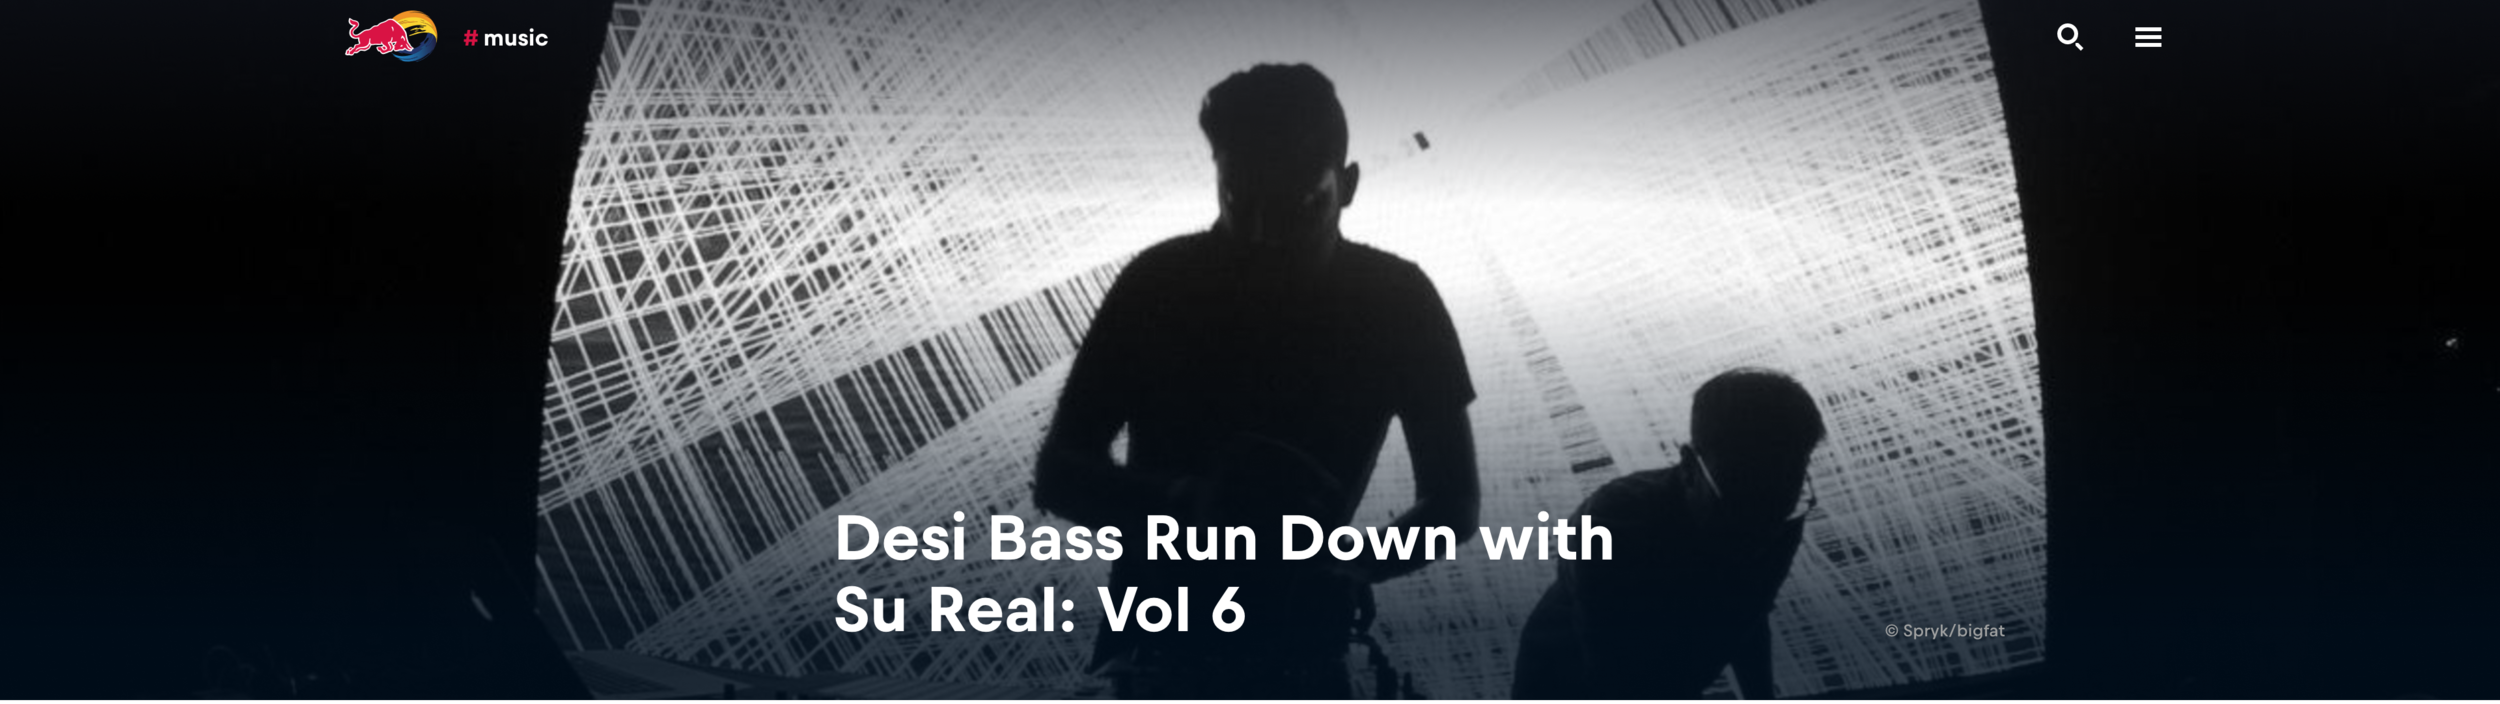 Red Bull : Desi Bass Run Down